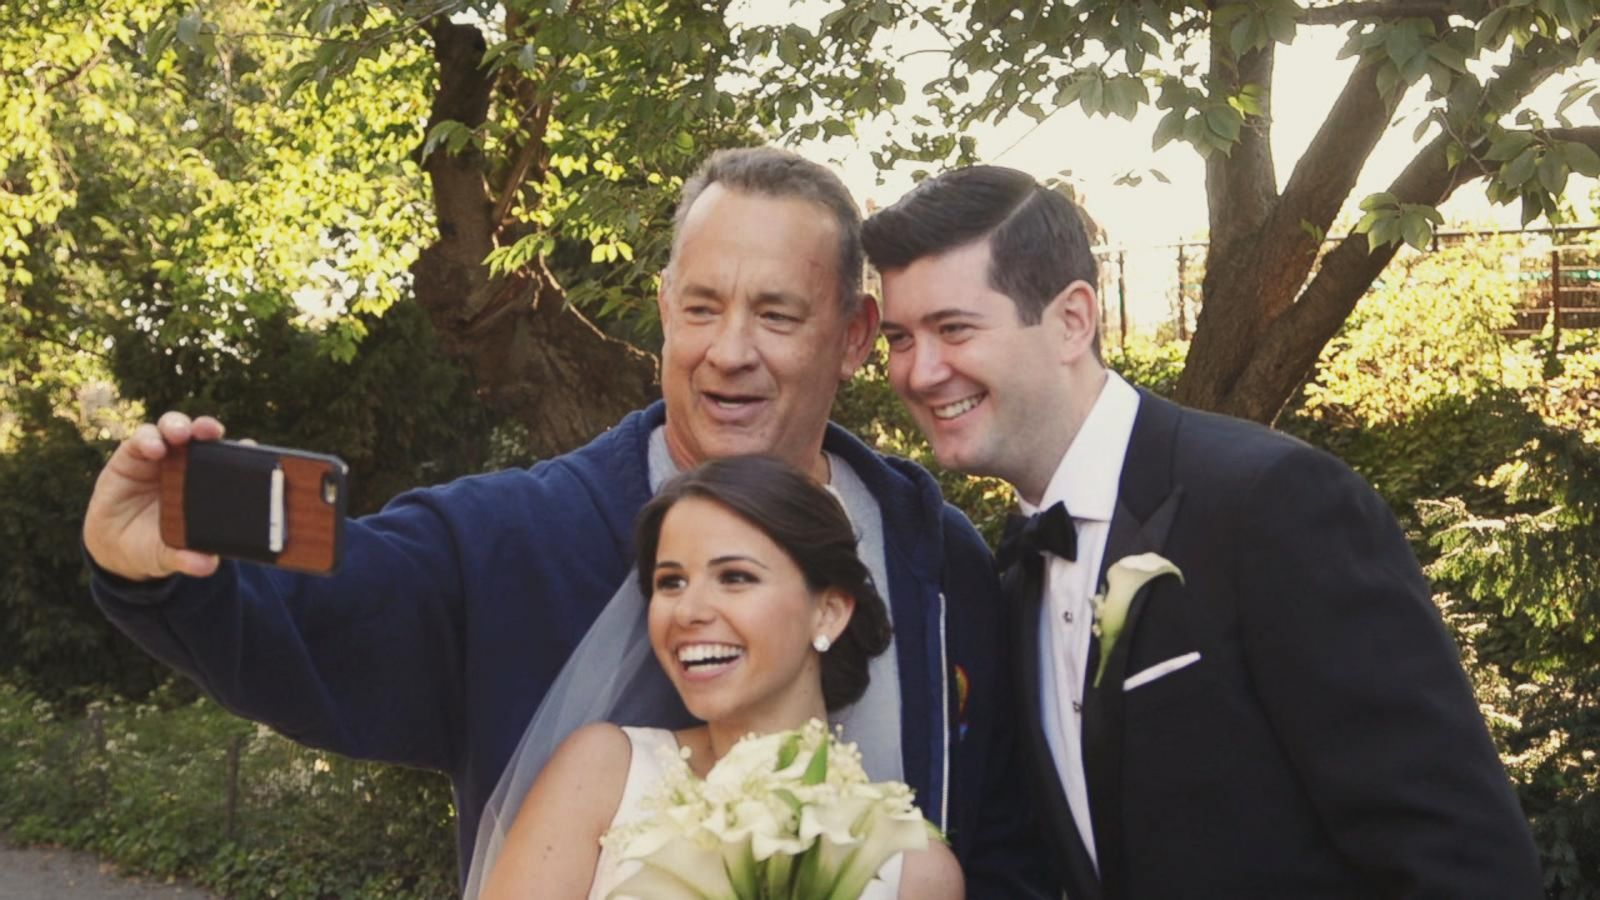 VIDEO: Tom Hanks Crashes Newlyweds' Photo Shoot in Central Park